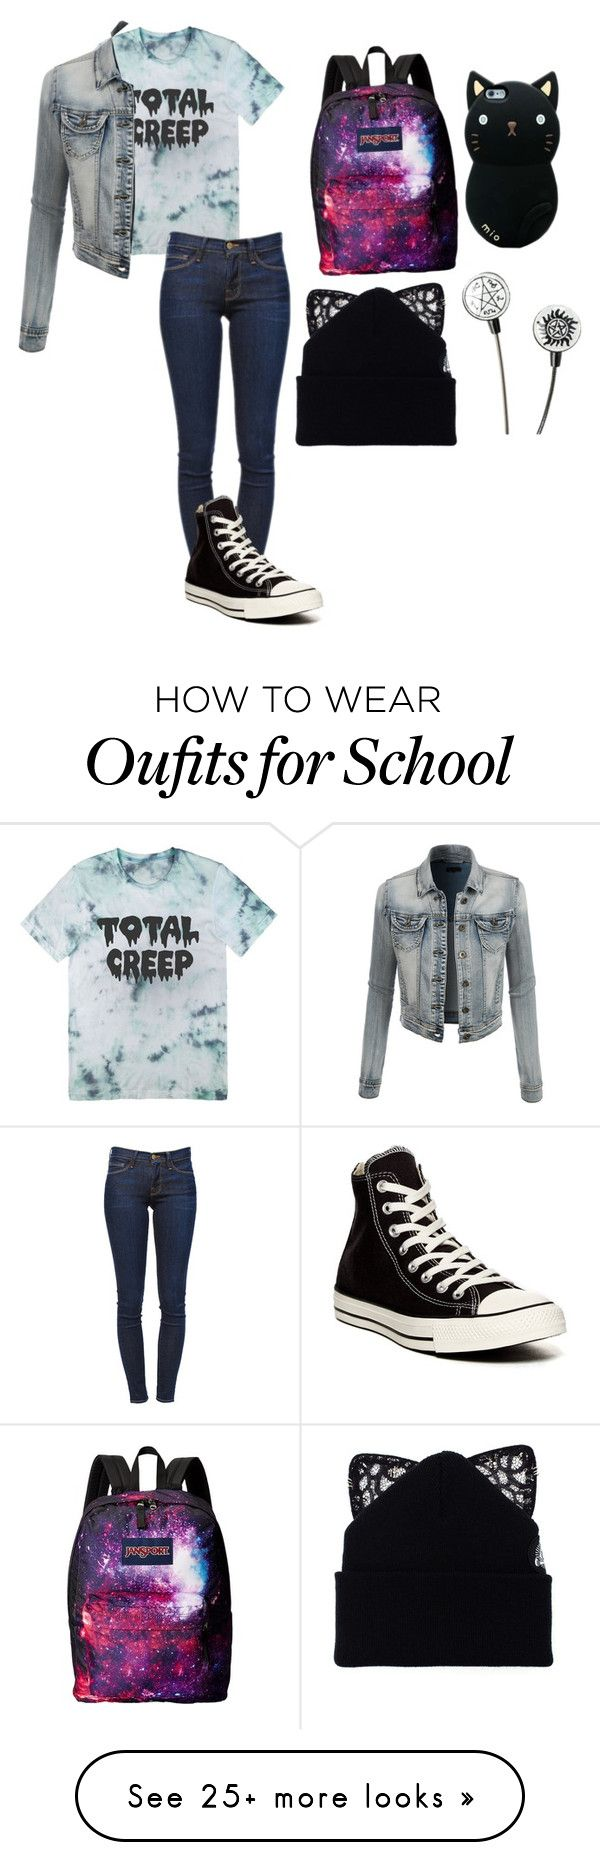 """What I'd Wear On The First Day Of School"" by armamak on Polyvore featuring Frame Denim, LE3NO, Converse, JanSport and Silver Spoon Attire"